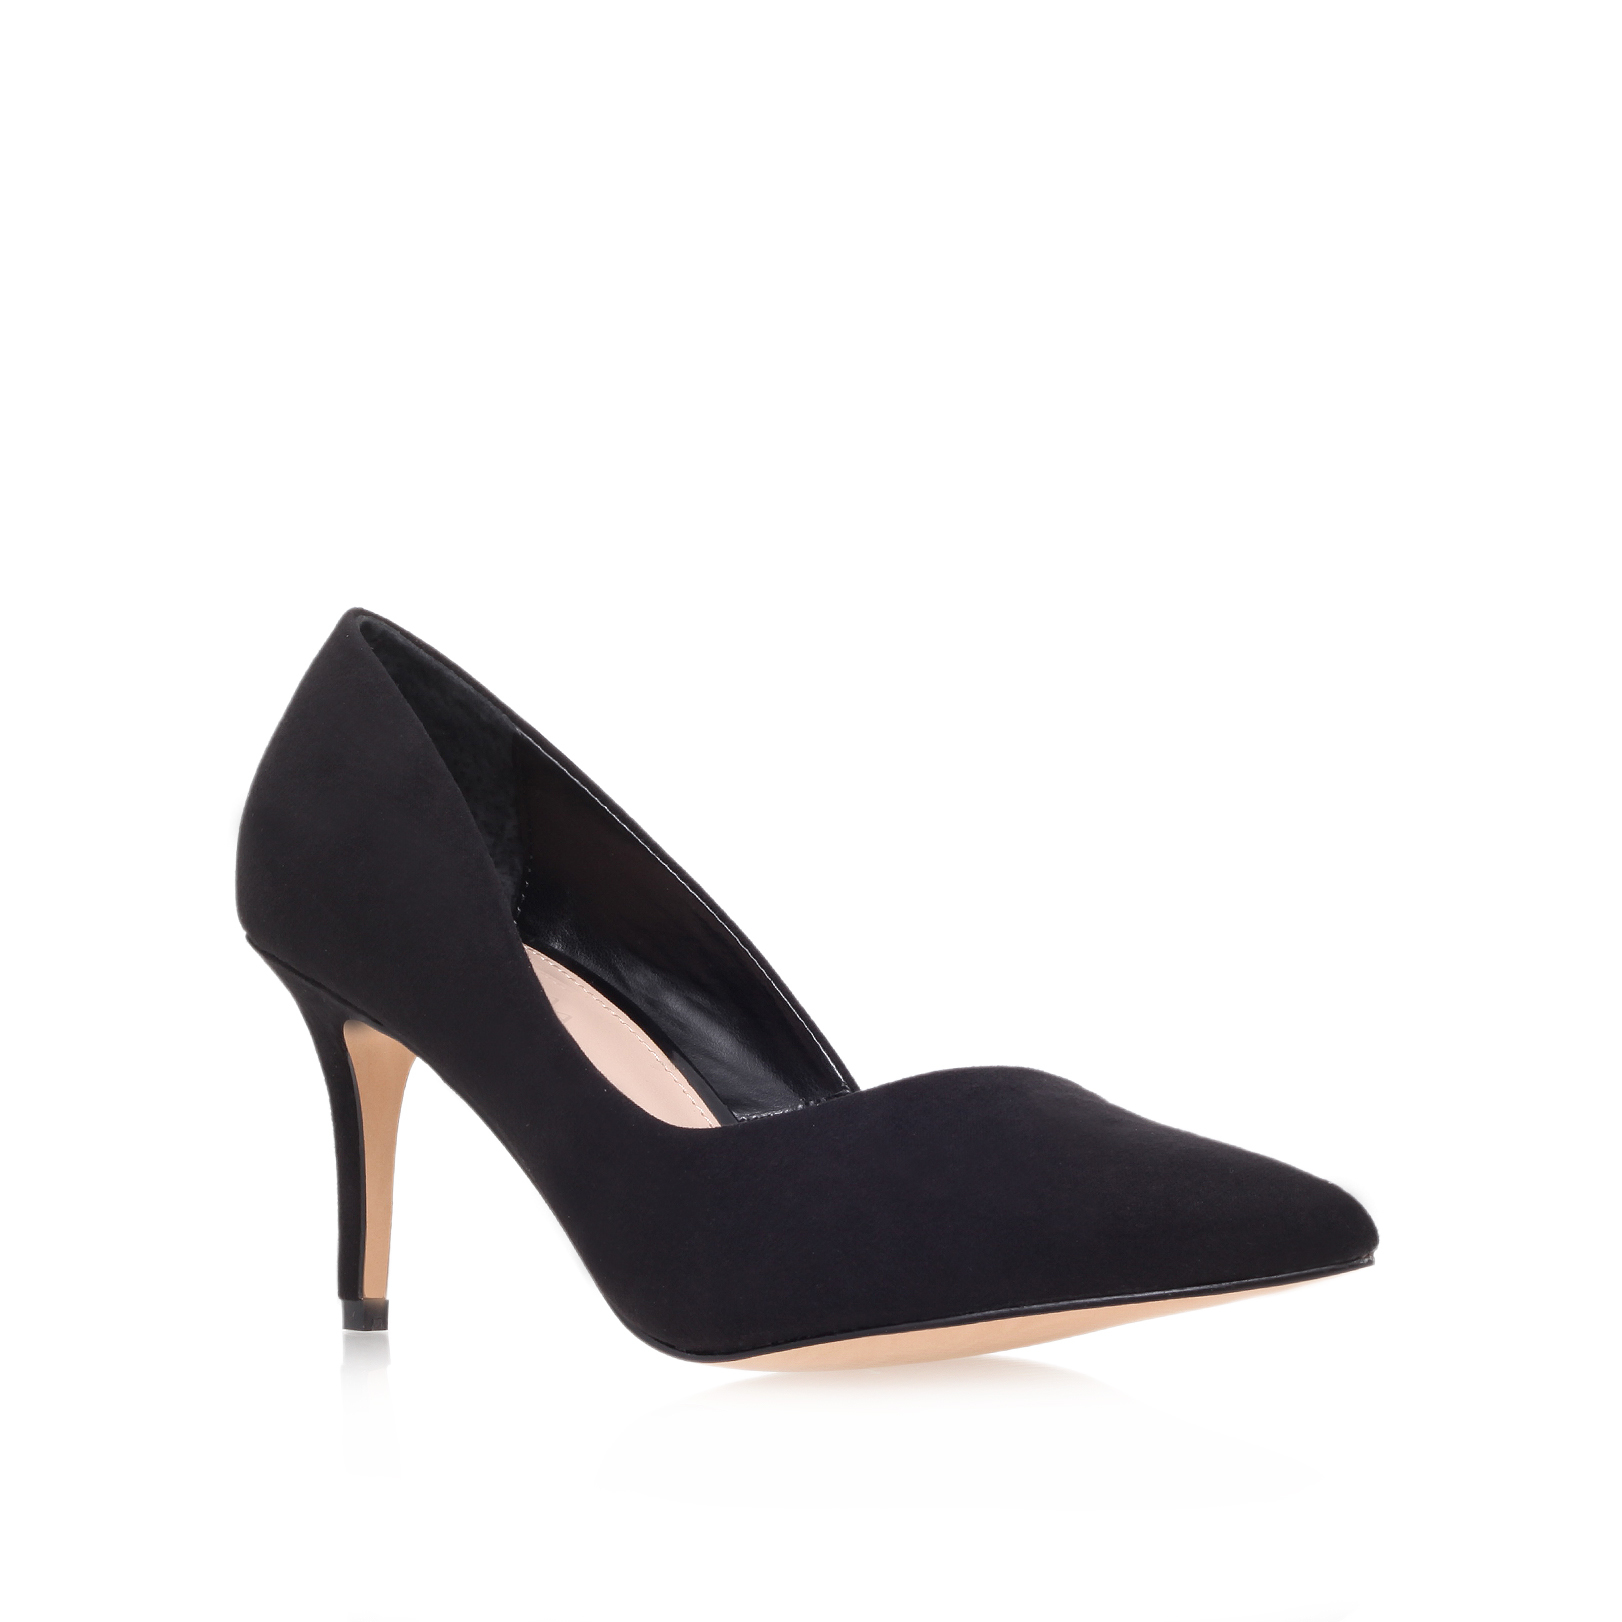 d18679045 ABYSS Carvela Abyss Black Mid Heel Court Shoes by CARVELA KURT GEIGER